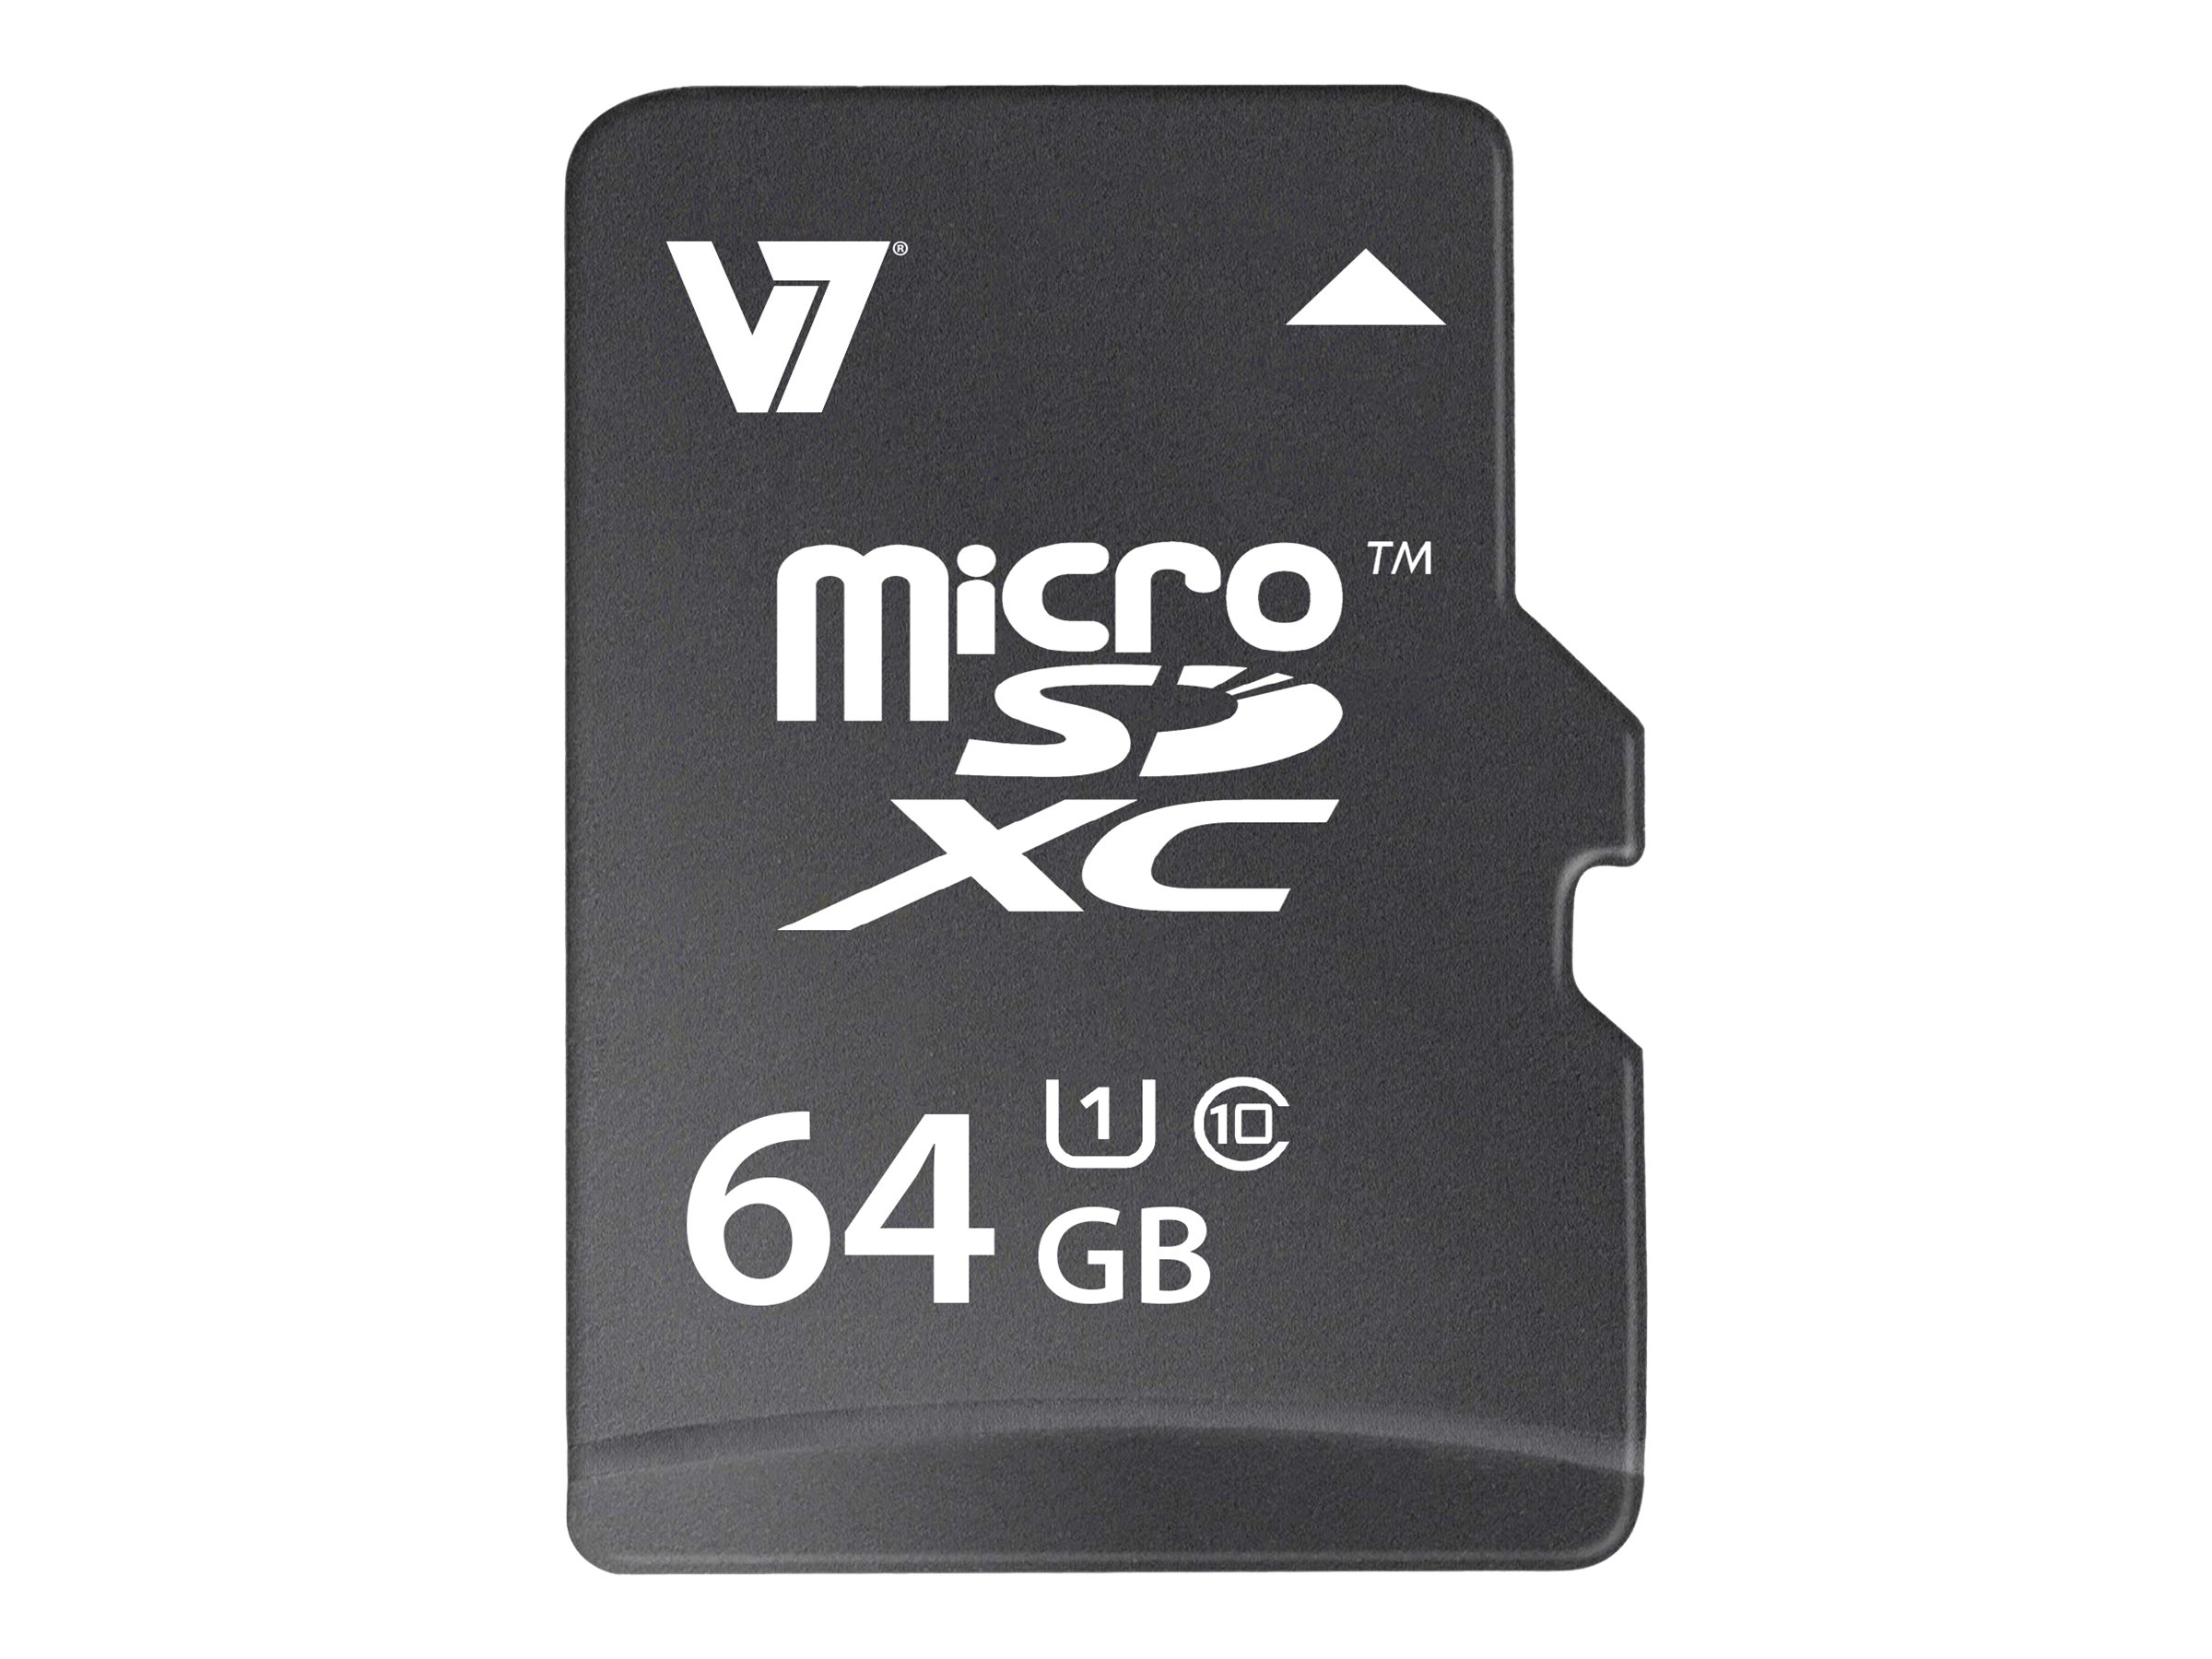 V7 64GB Micro SDXC Flash Memory Card, Class 10, VAMSDX64GUHS1R-2N